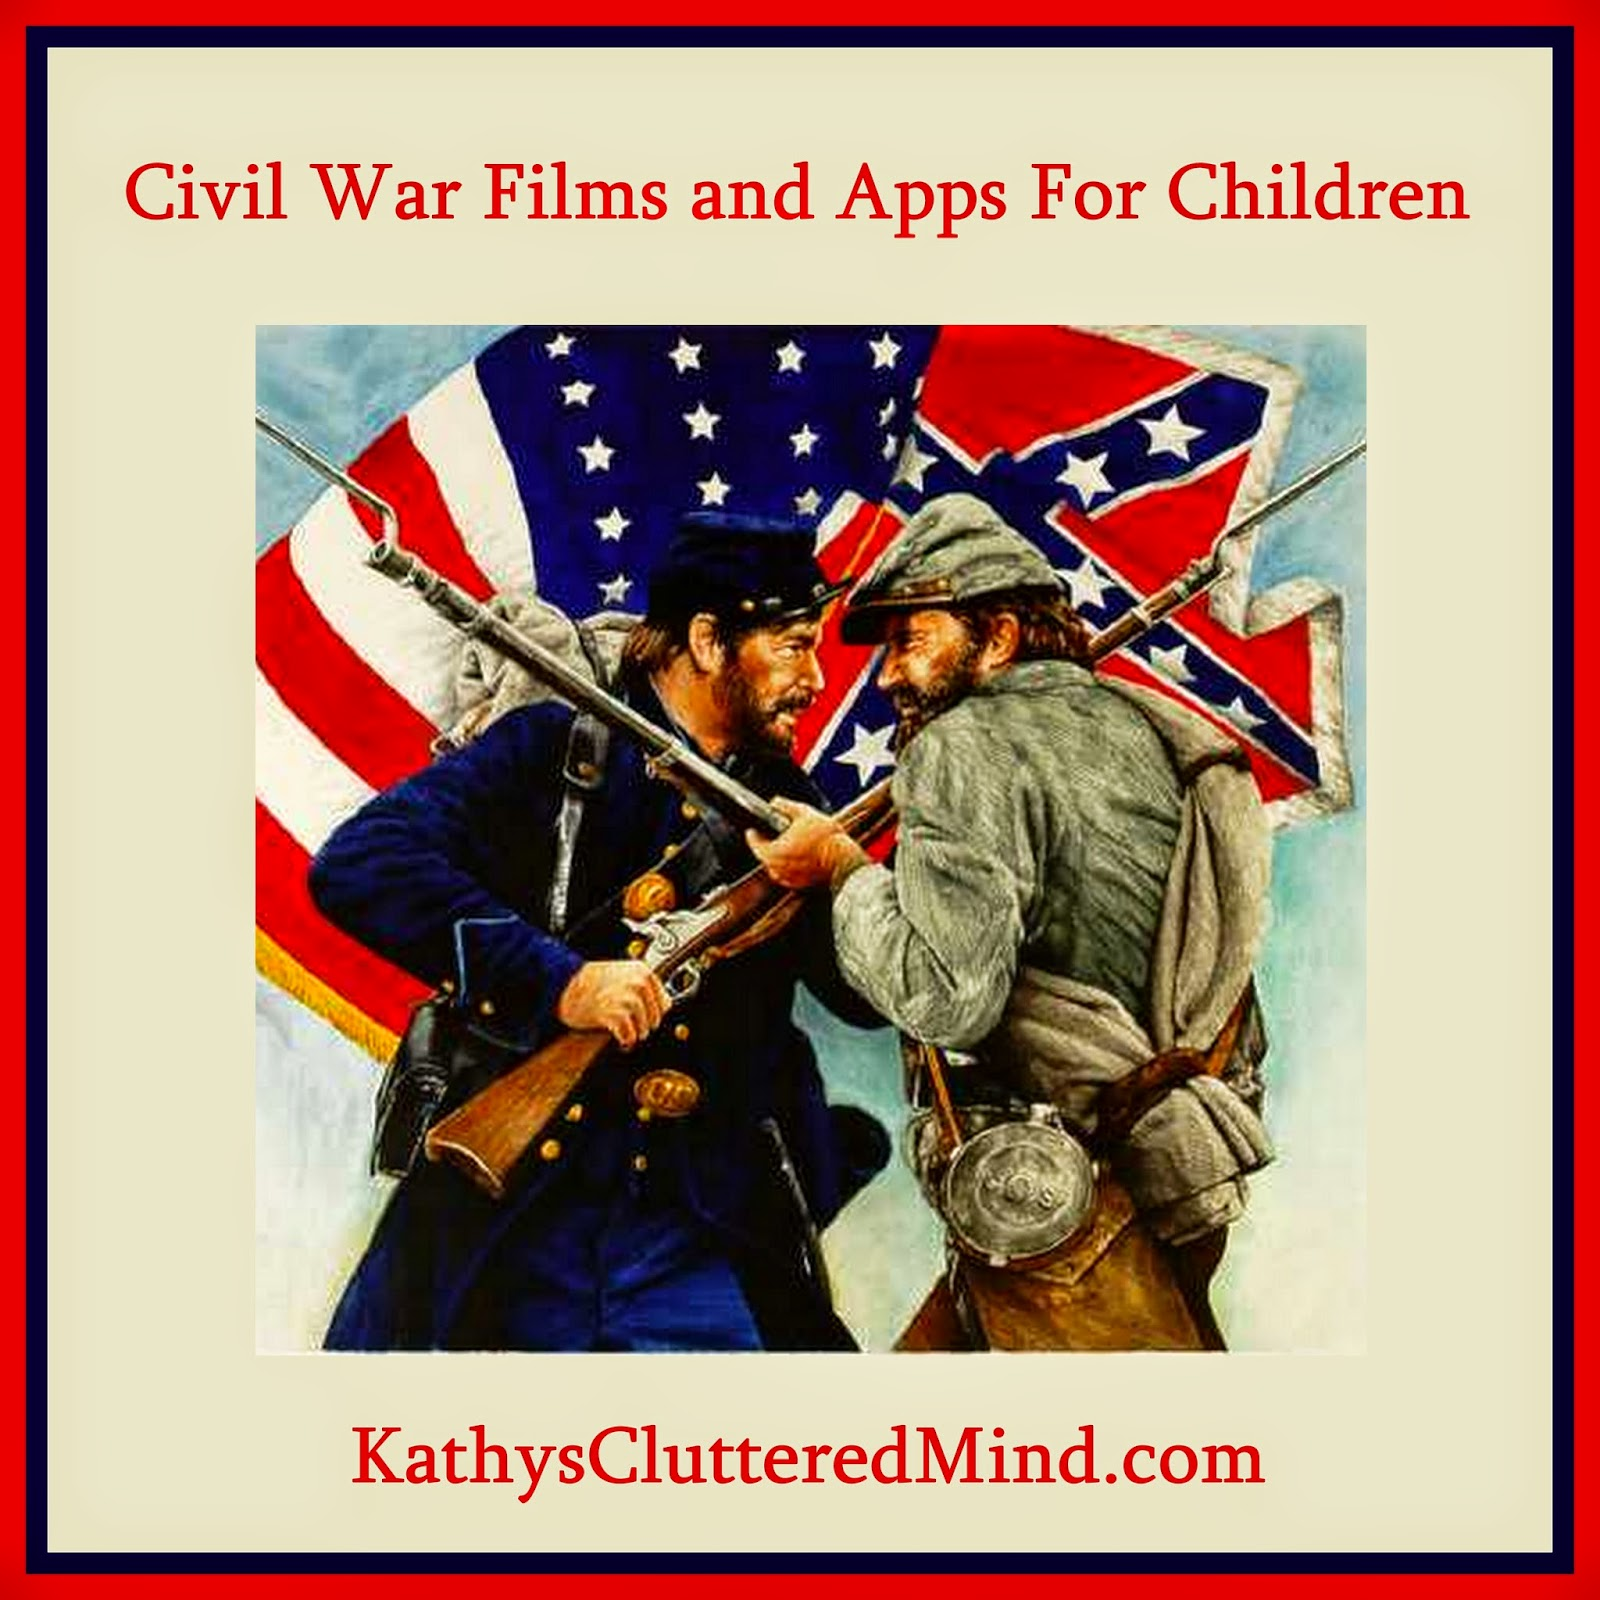 medium resolution of Kathys Cluttered Mind: Civil War Films and Apps For Children